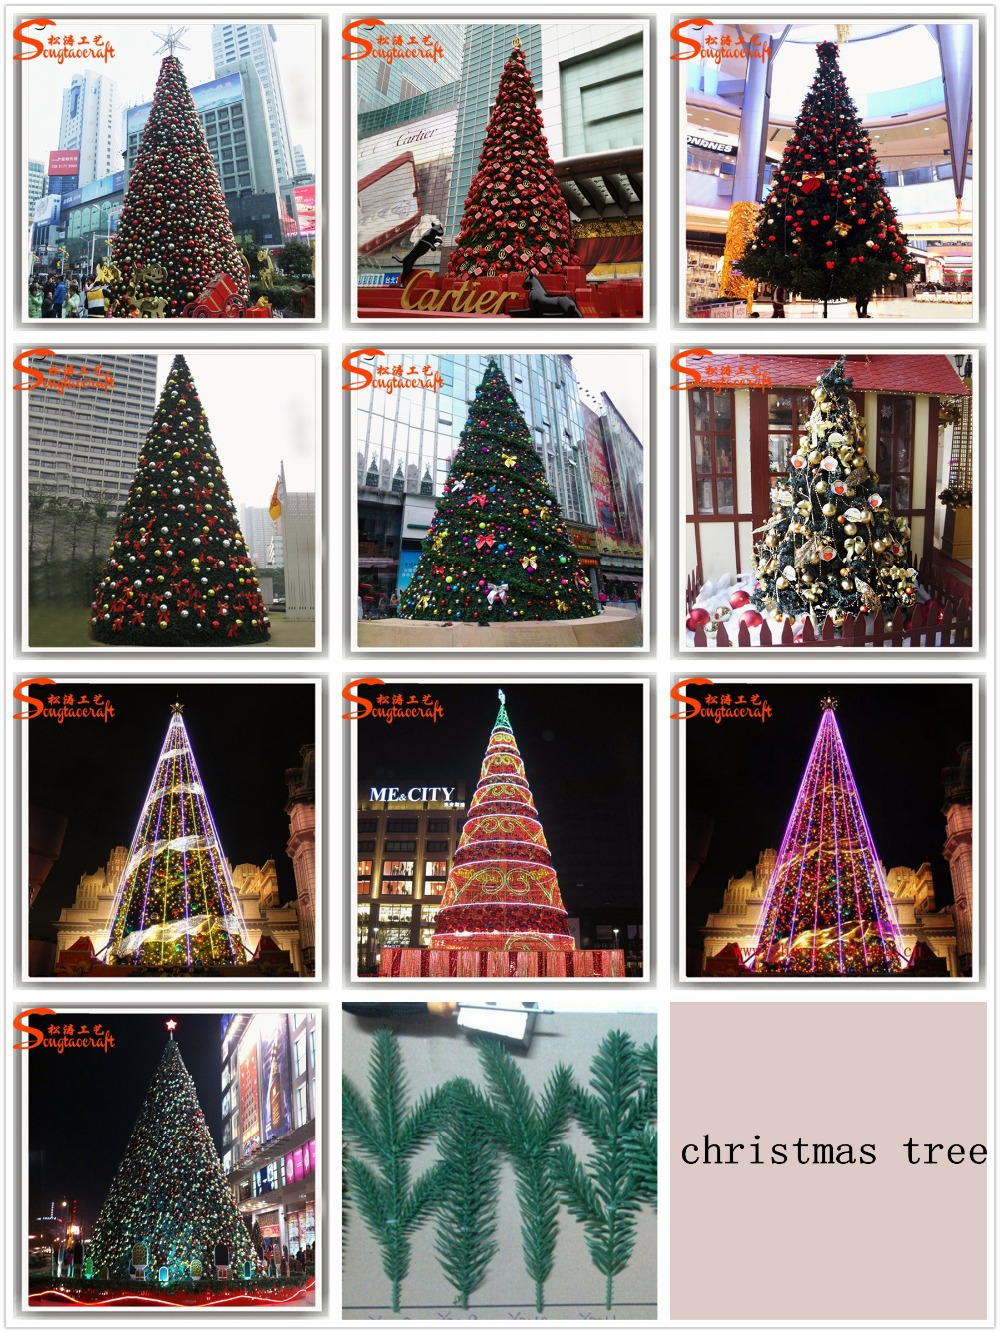 6meter metal frame artificial giant christmas tree ornament decoration large xmas tree